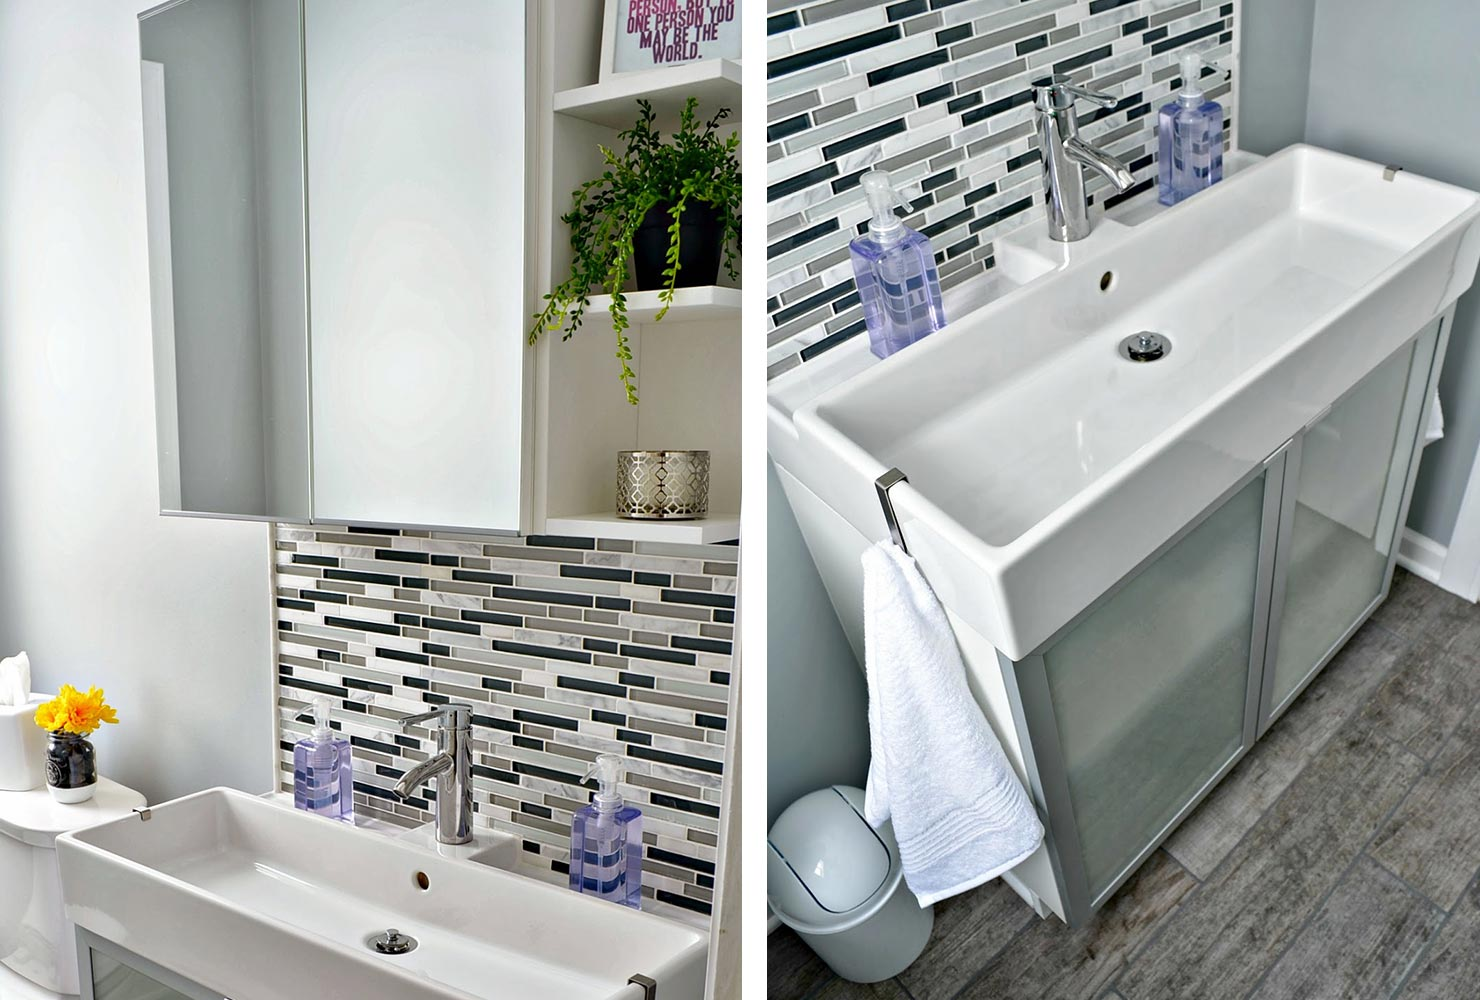 Bathroom Decoration Idea by An Inviting Home - Shutterfly